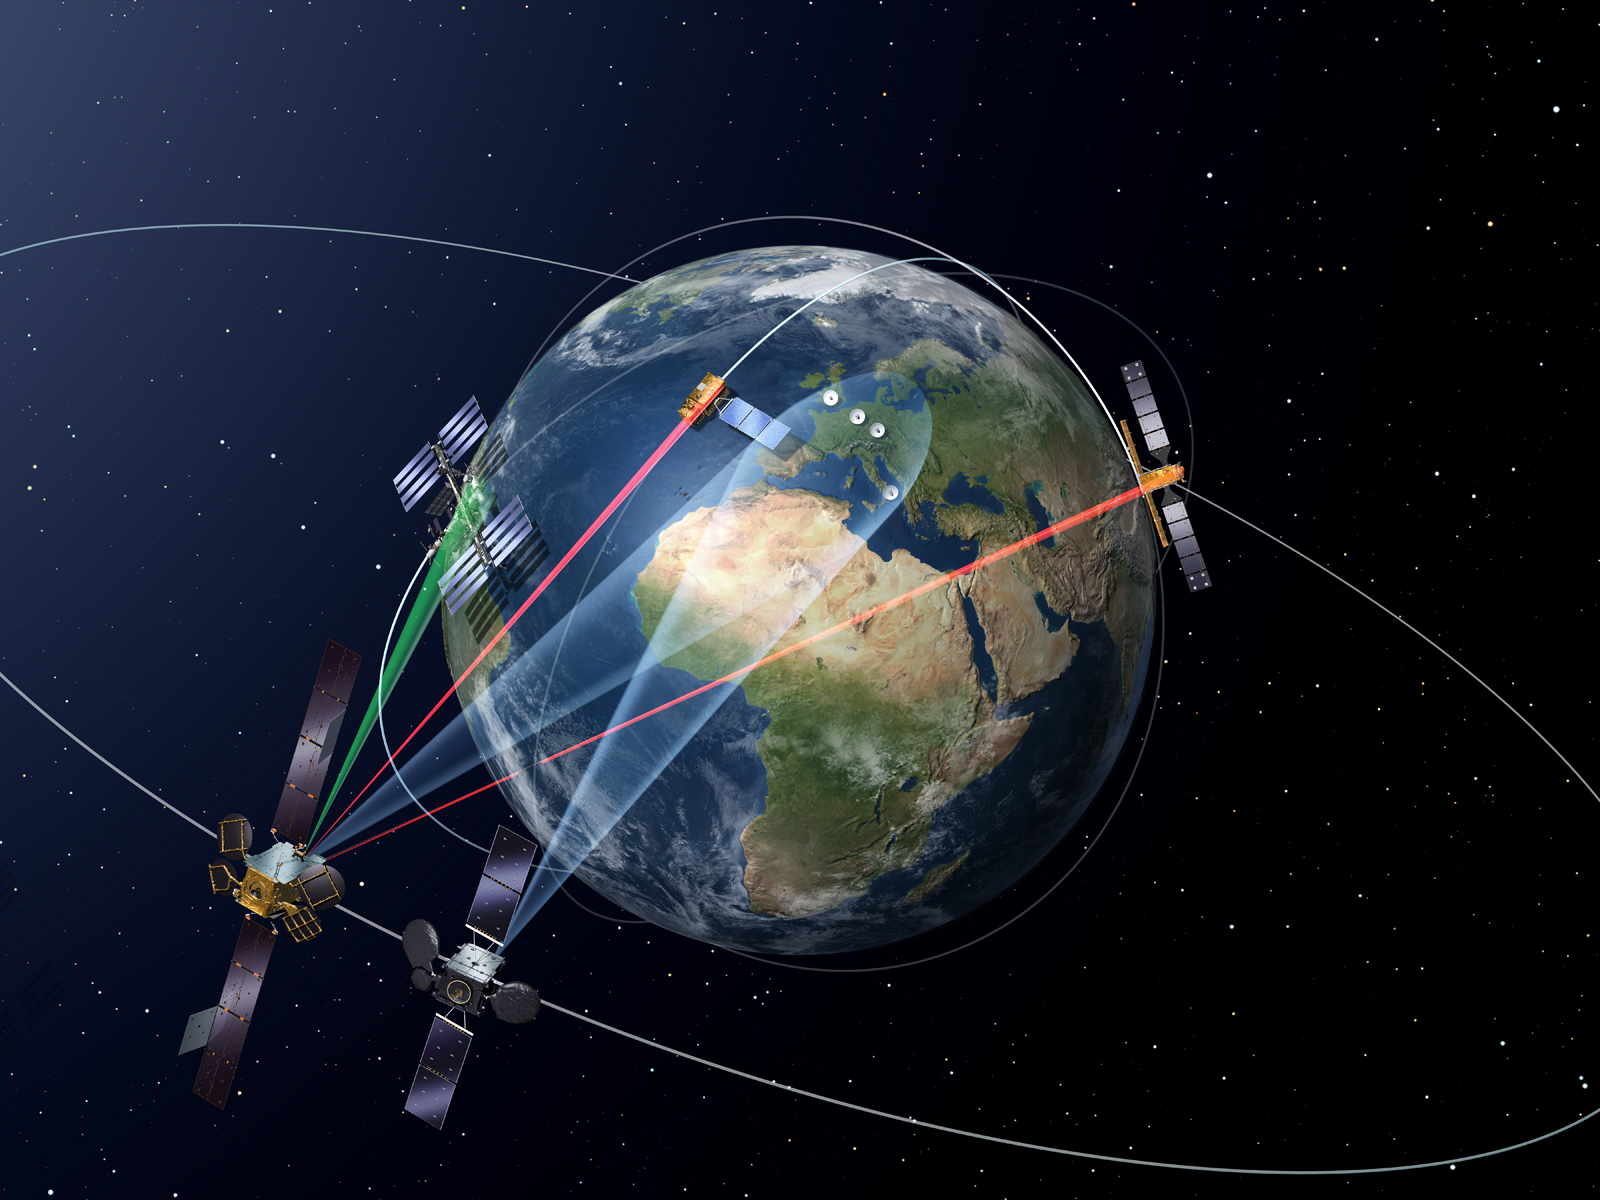 Artist's concept of the European Data Relay System. Credit: ESA